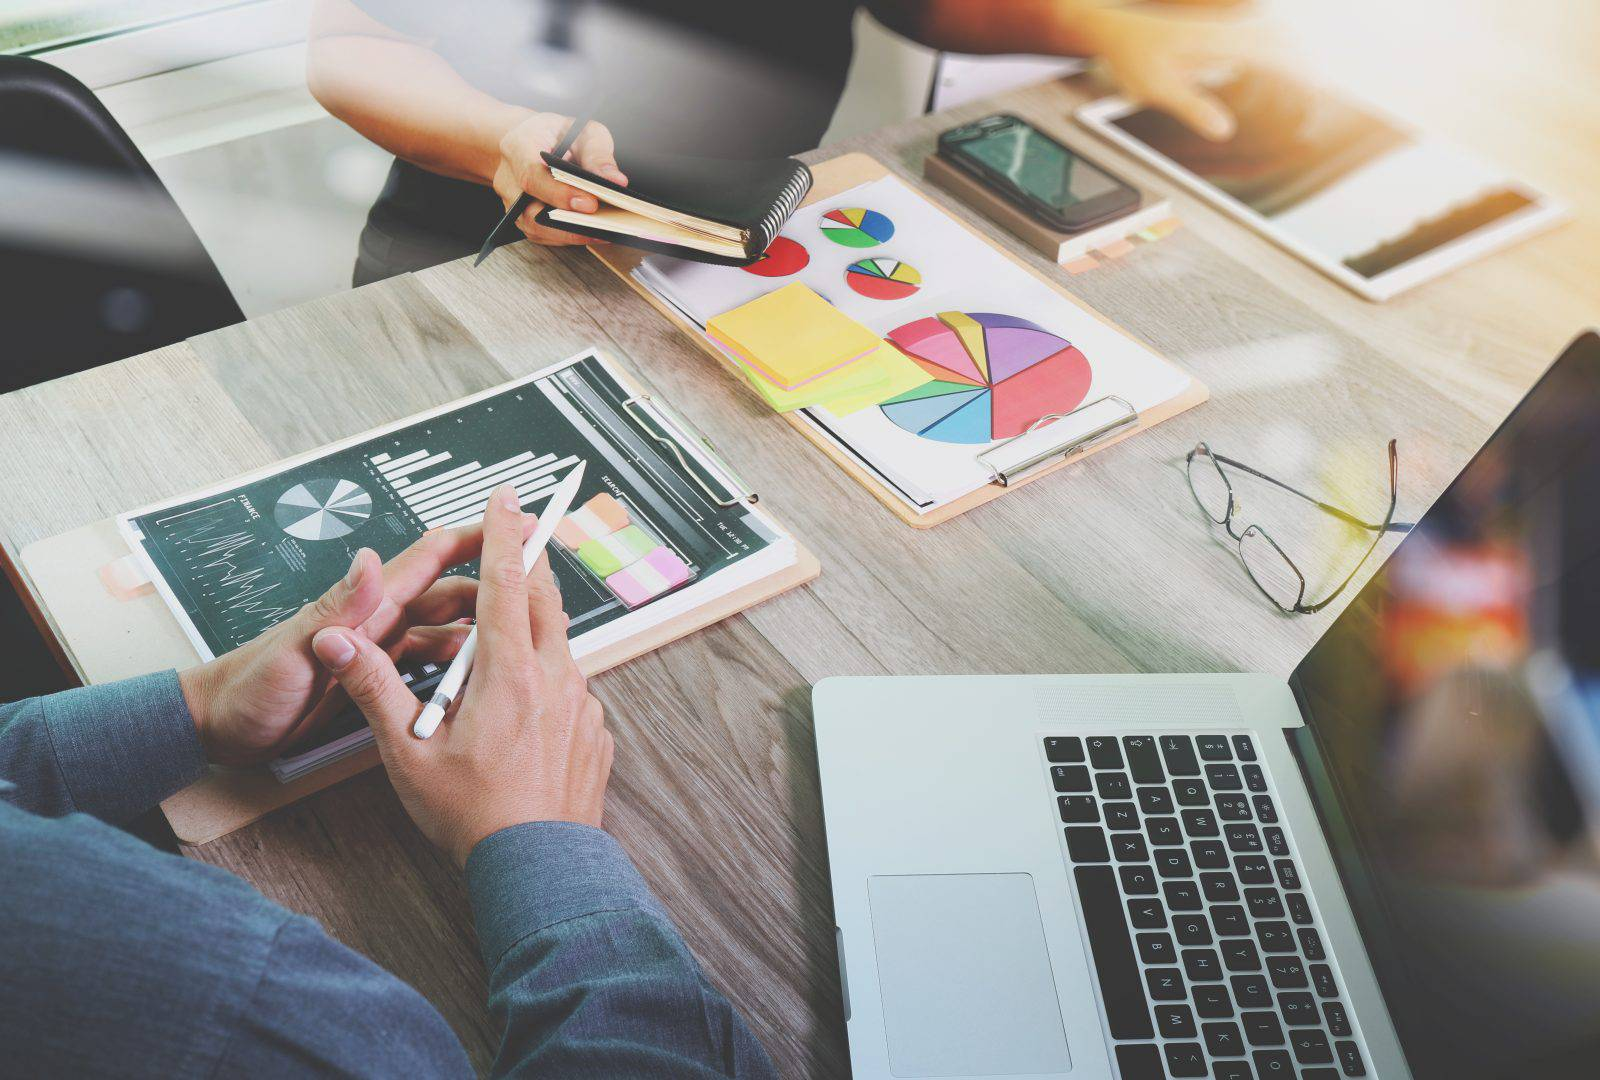 5 Important Considerations When Choosing a Web Design Agency